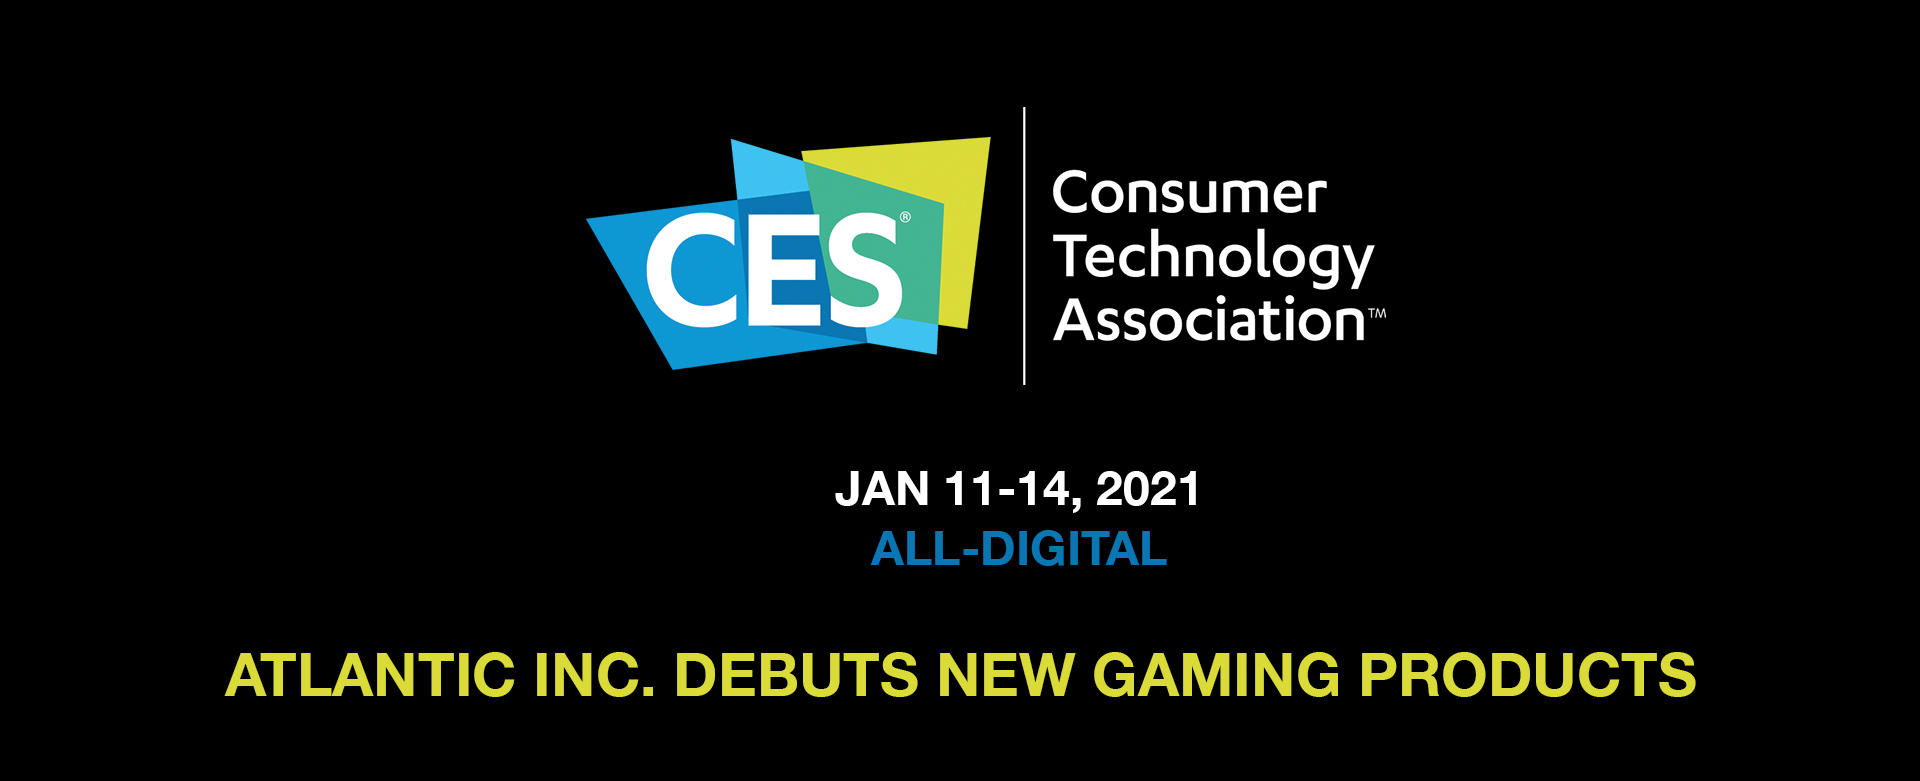 ces-2021-events.jpg